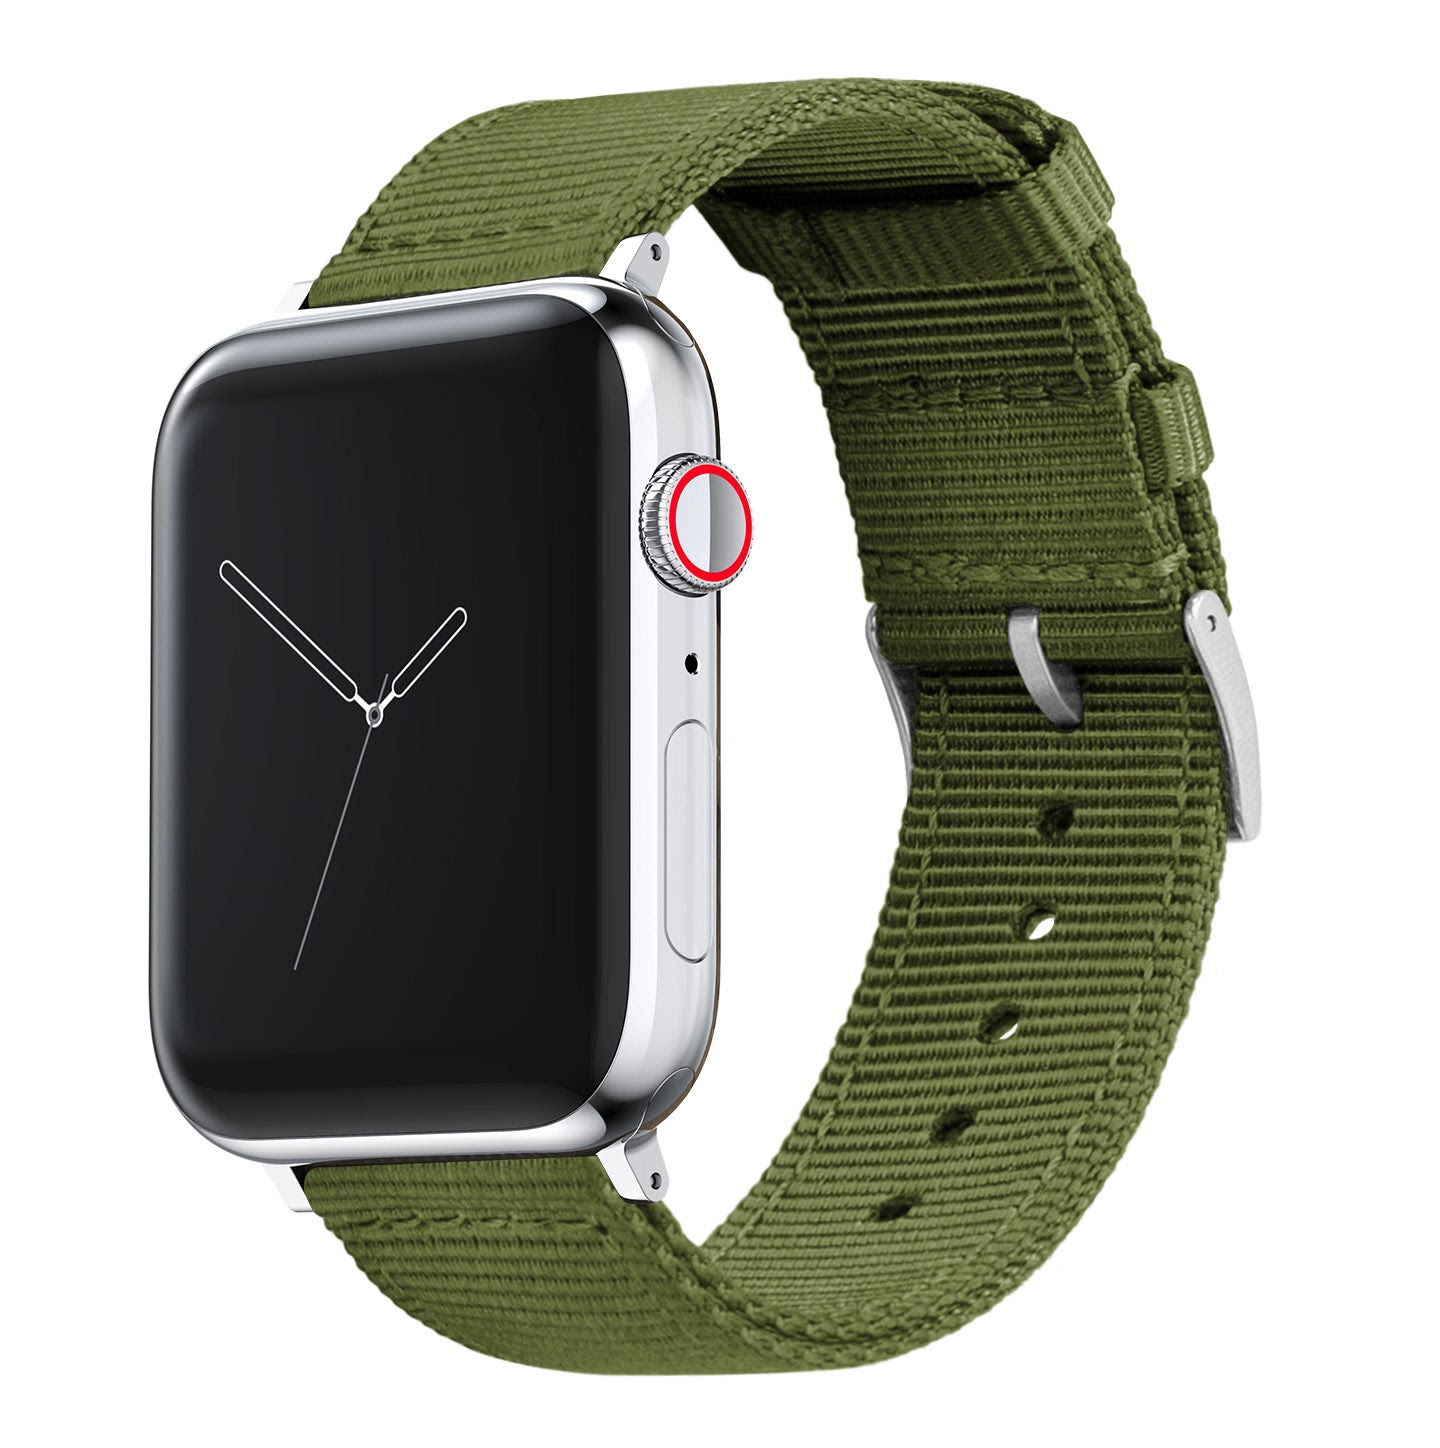 Image of Apple Watch | Two-piece NATO Style | Army Green